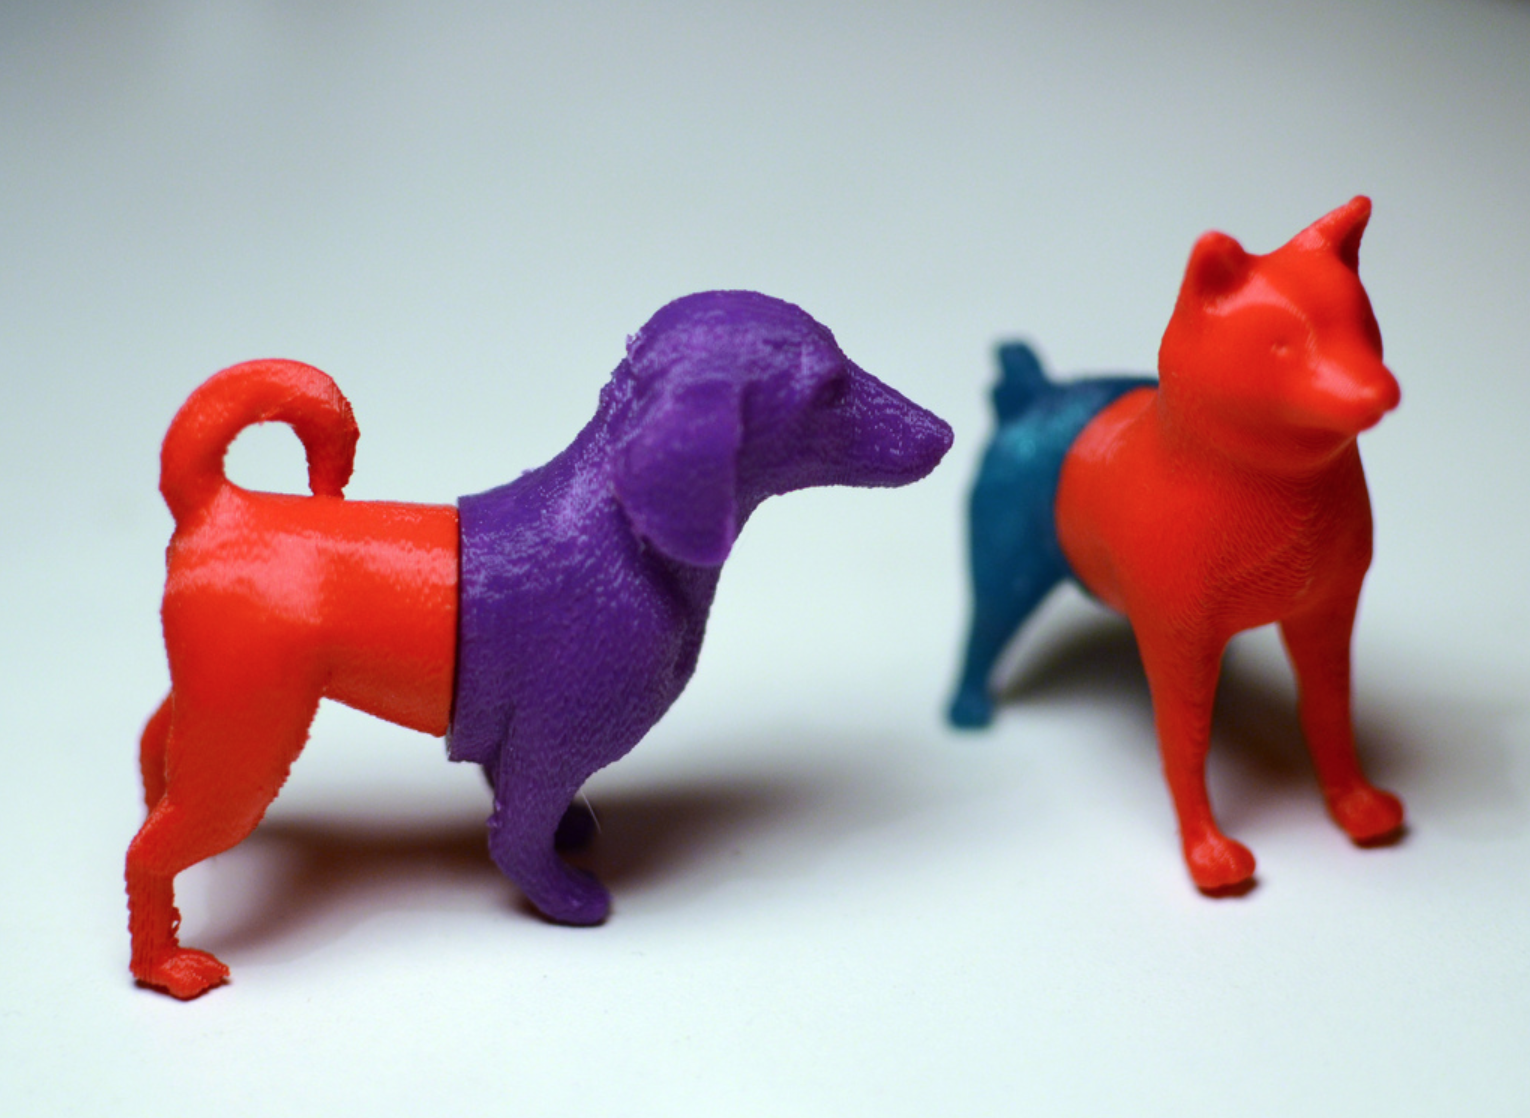 Capture d'écran 2018-03-29 à 11.56.34.png Download free STL file Mixable dog models - Puzzle game • Design to 3D print, simiboy